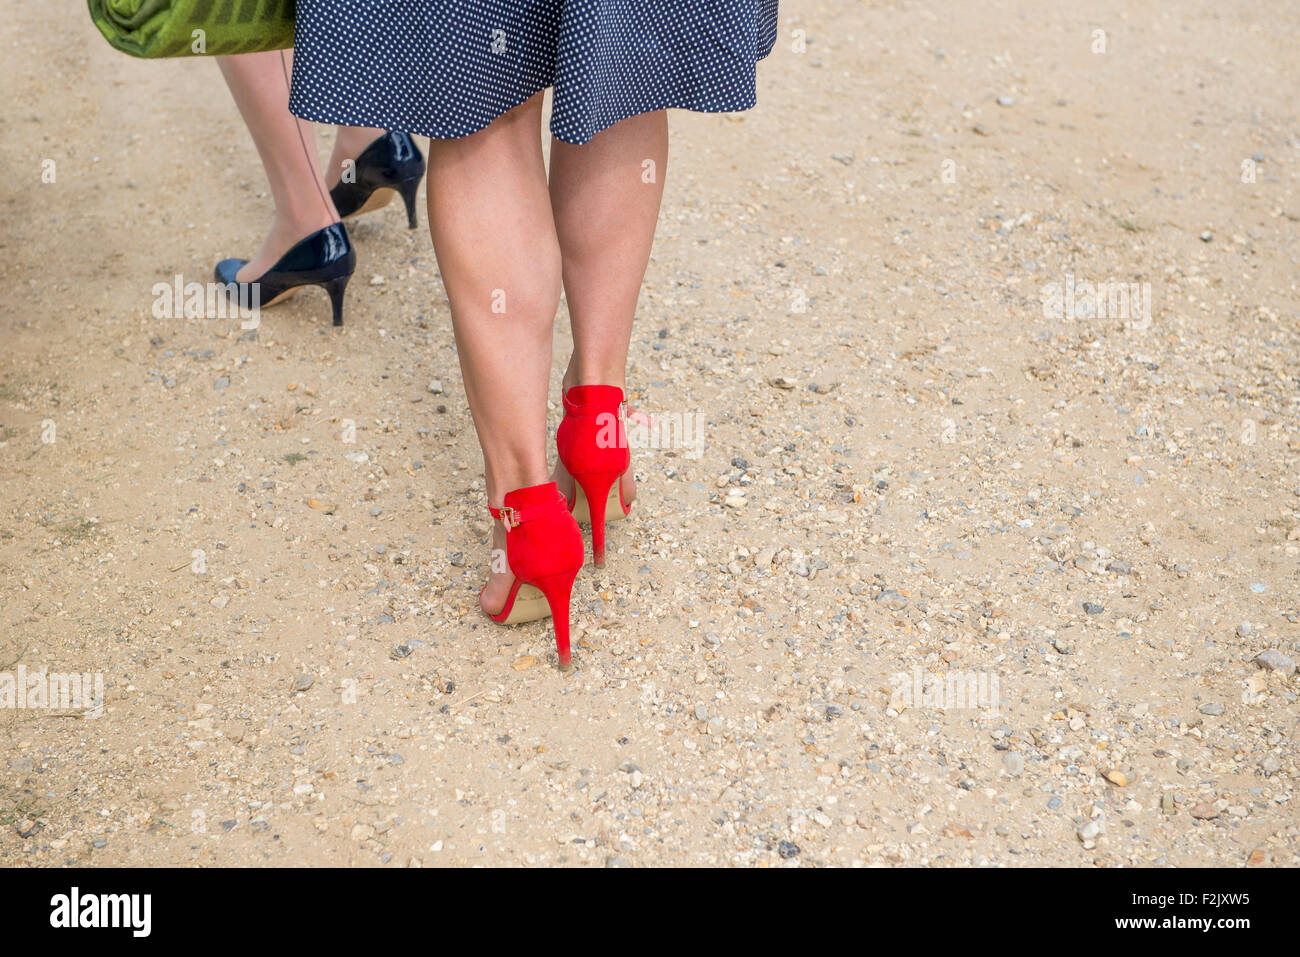 shapely womens legs dressed in stockings and wearing high heels red stilletto heeled shoes - Stock Image